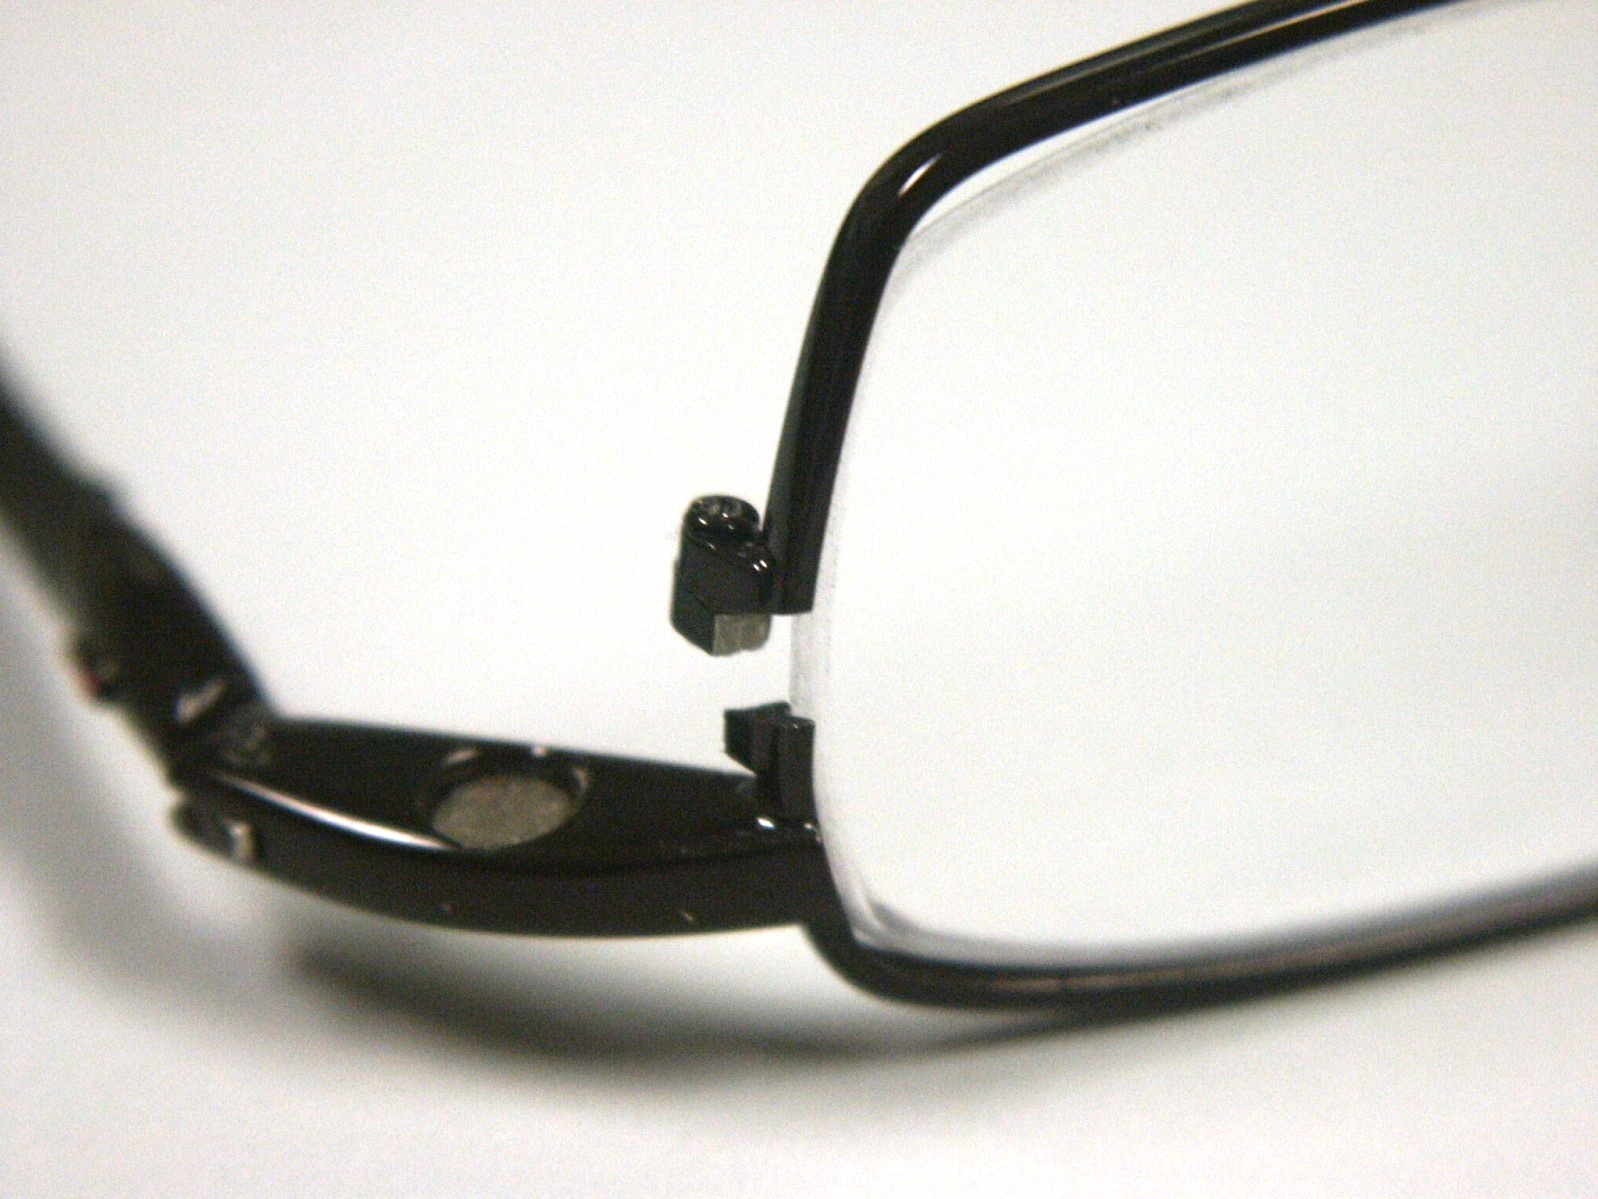 Eyeglass Frame Repair Welding : Eyeglass Repair Laser Weld Broken Eyeglasses TQ Diamonds